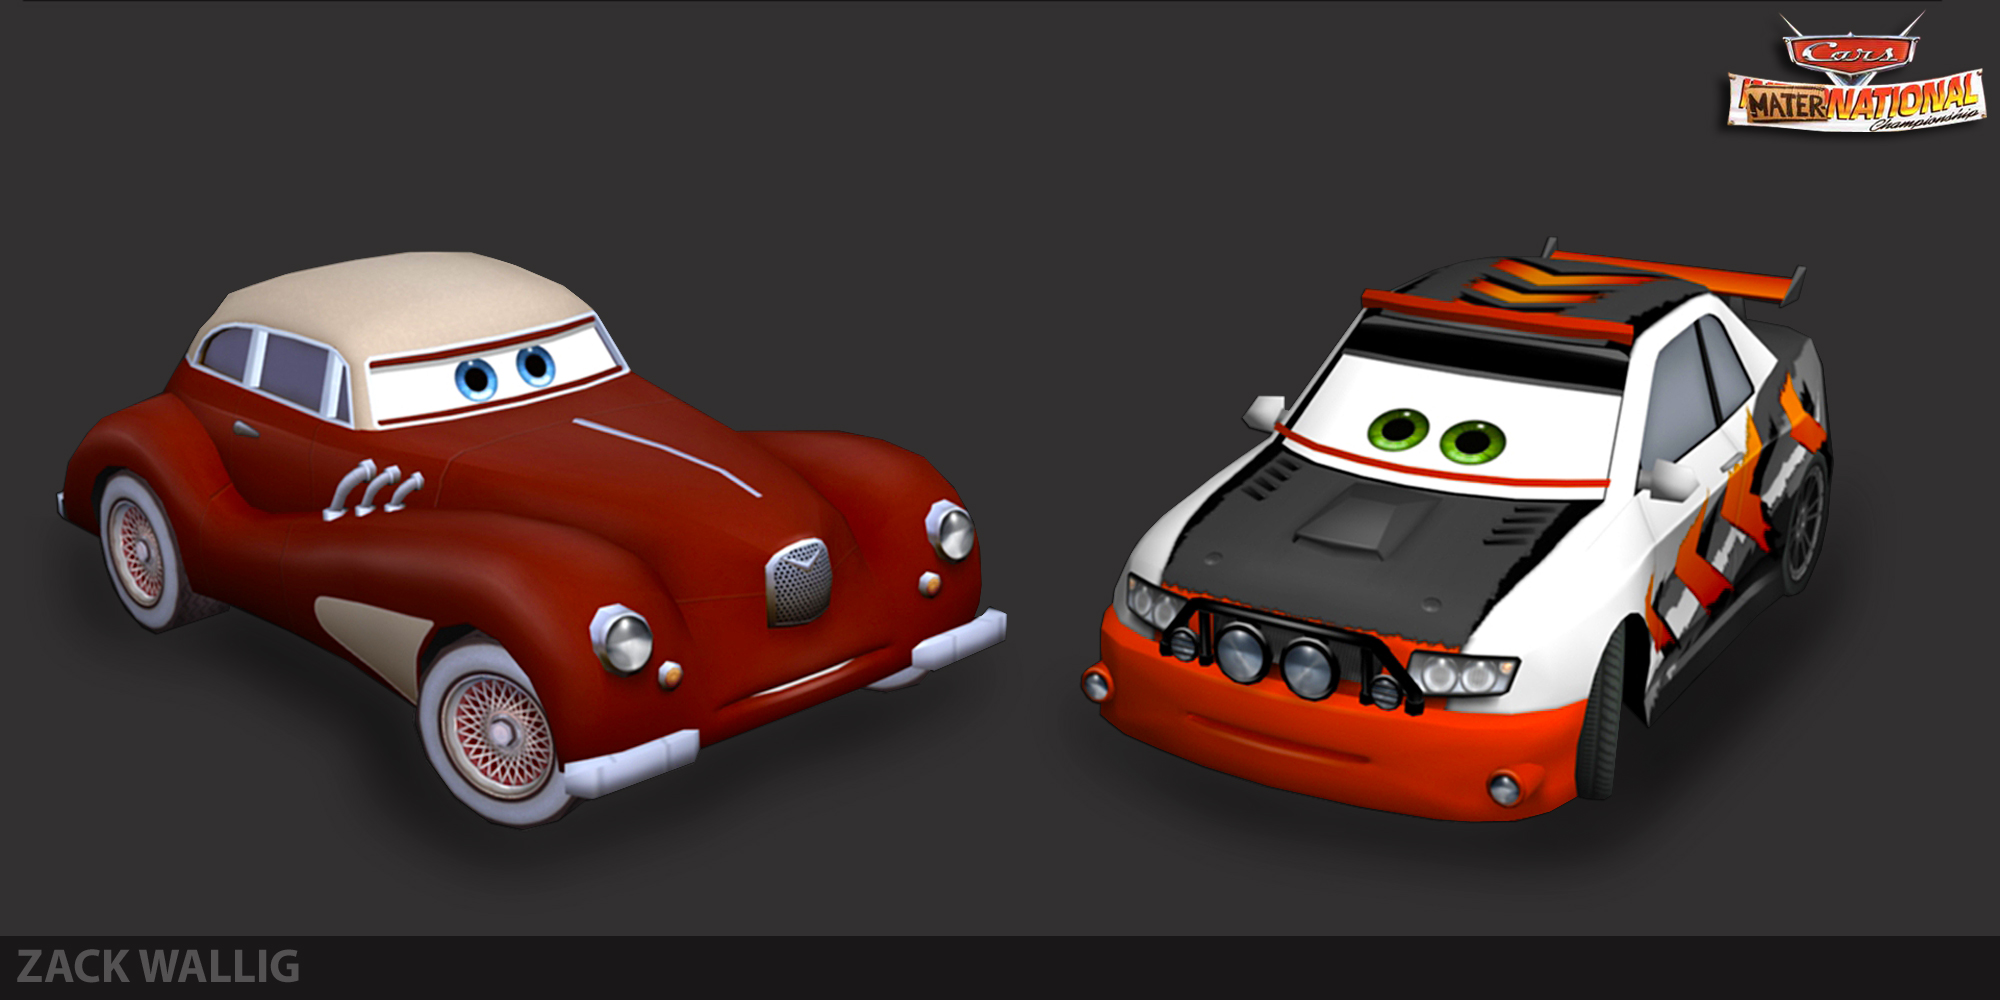 Production characters Cars Maternational